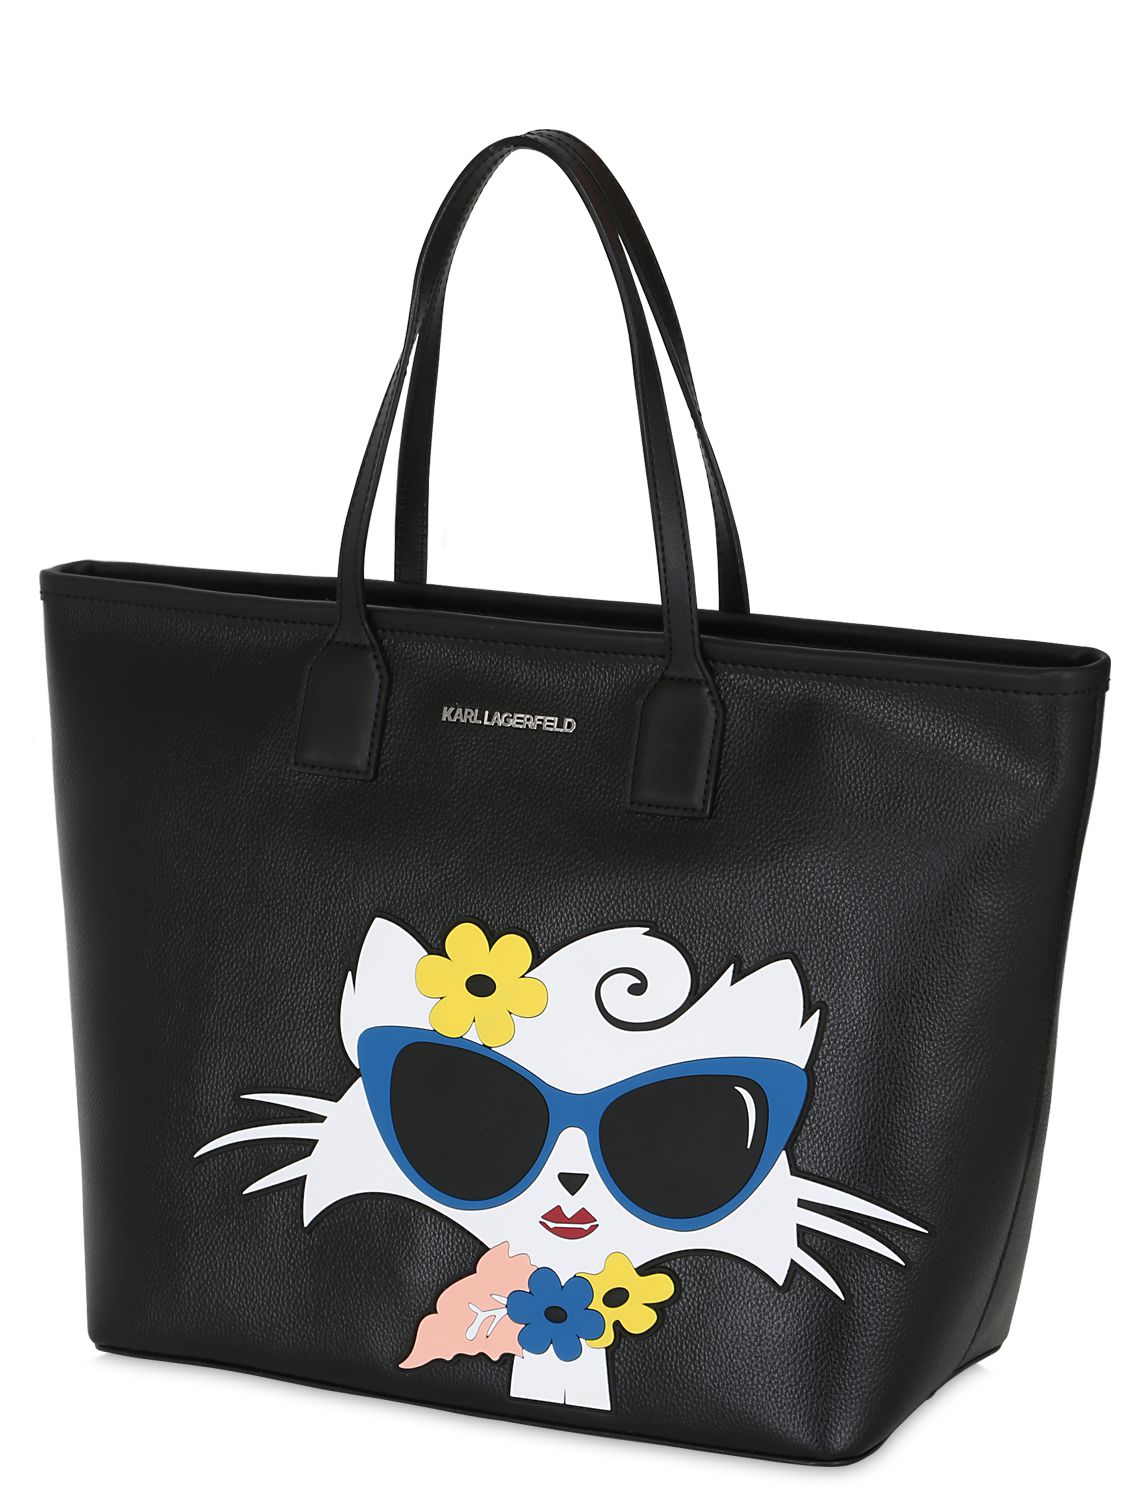 karl lagerfeld choupette beach tote bag in black lyst. Black Bedroom Furniture Sets. Home Design Ideas